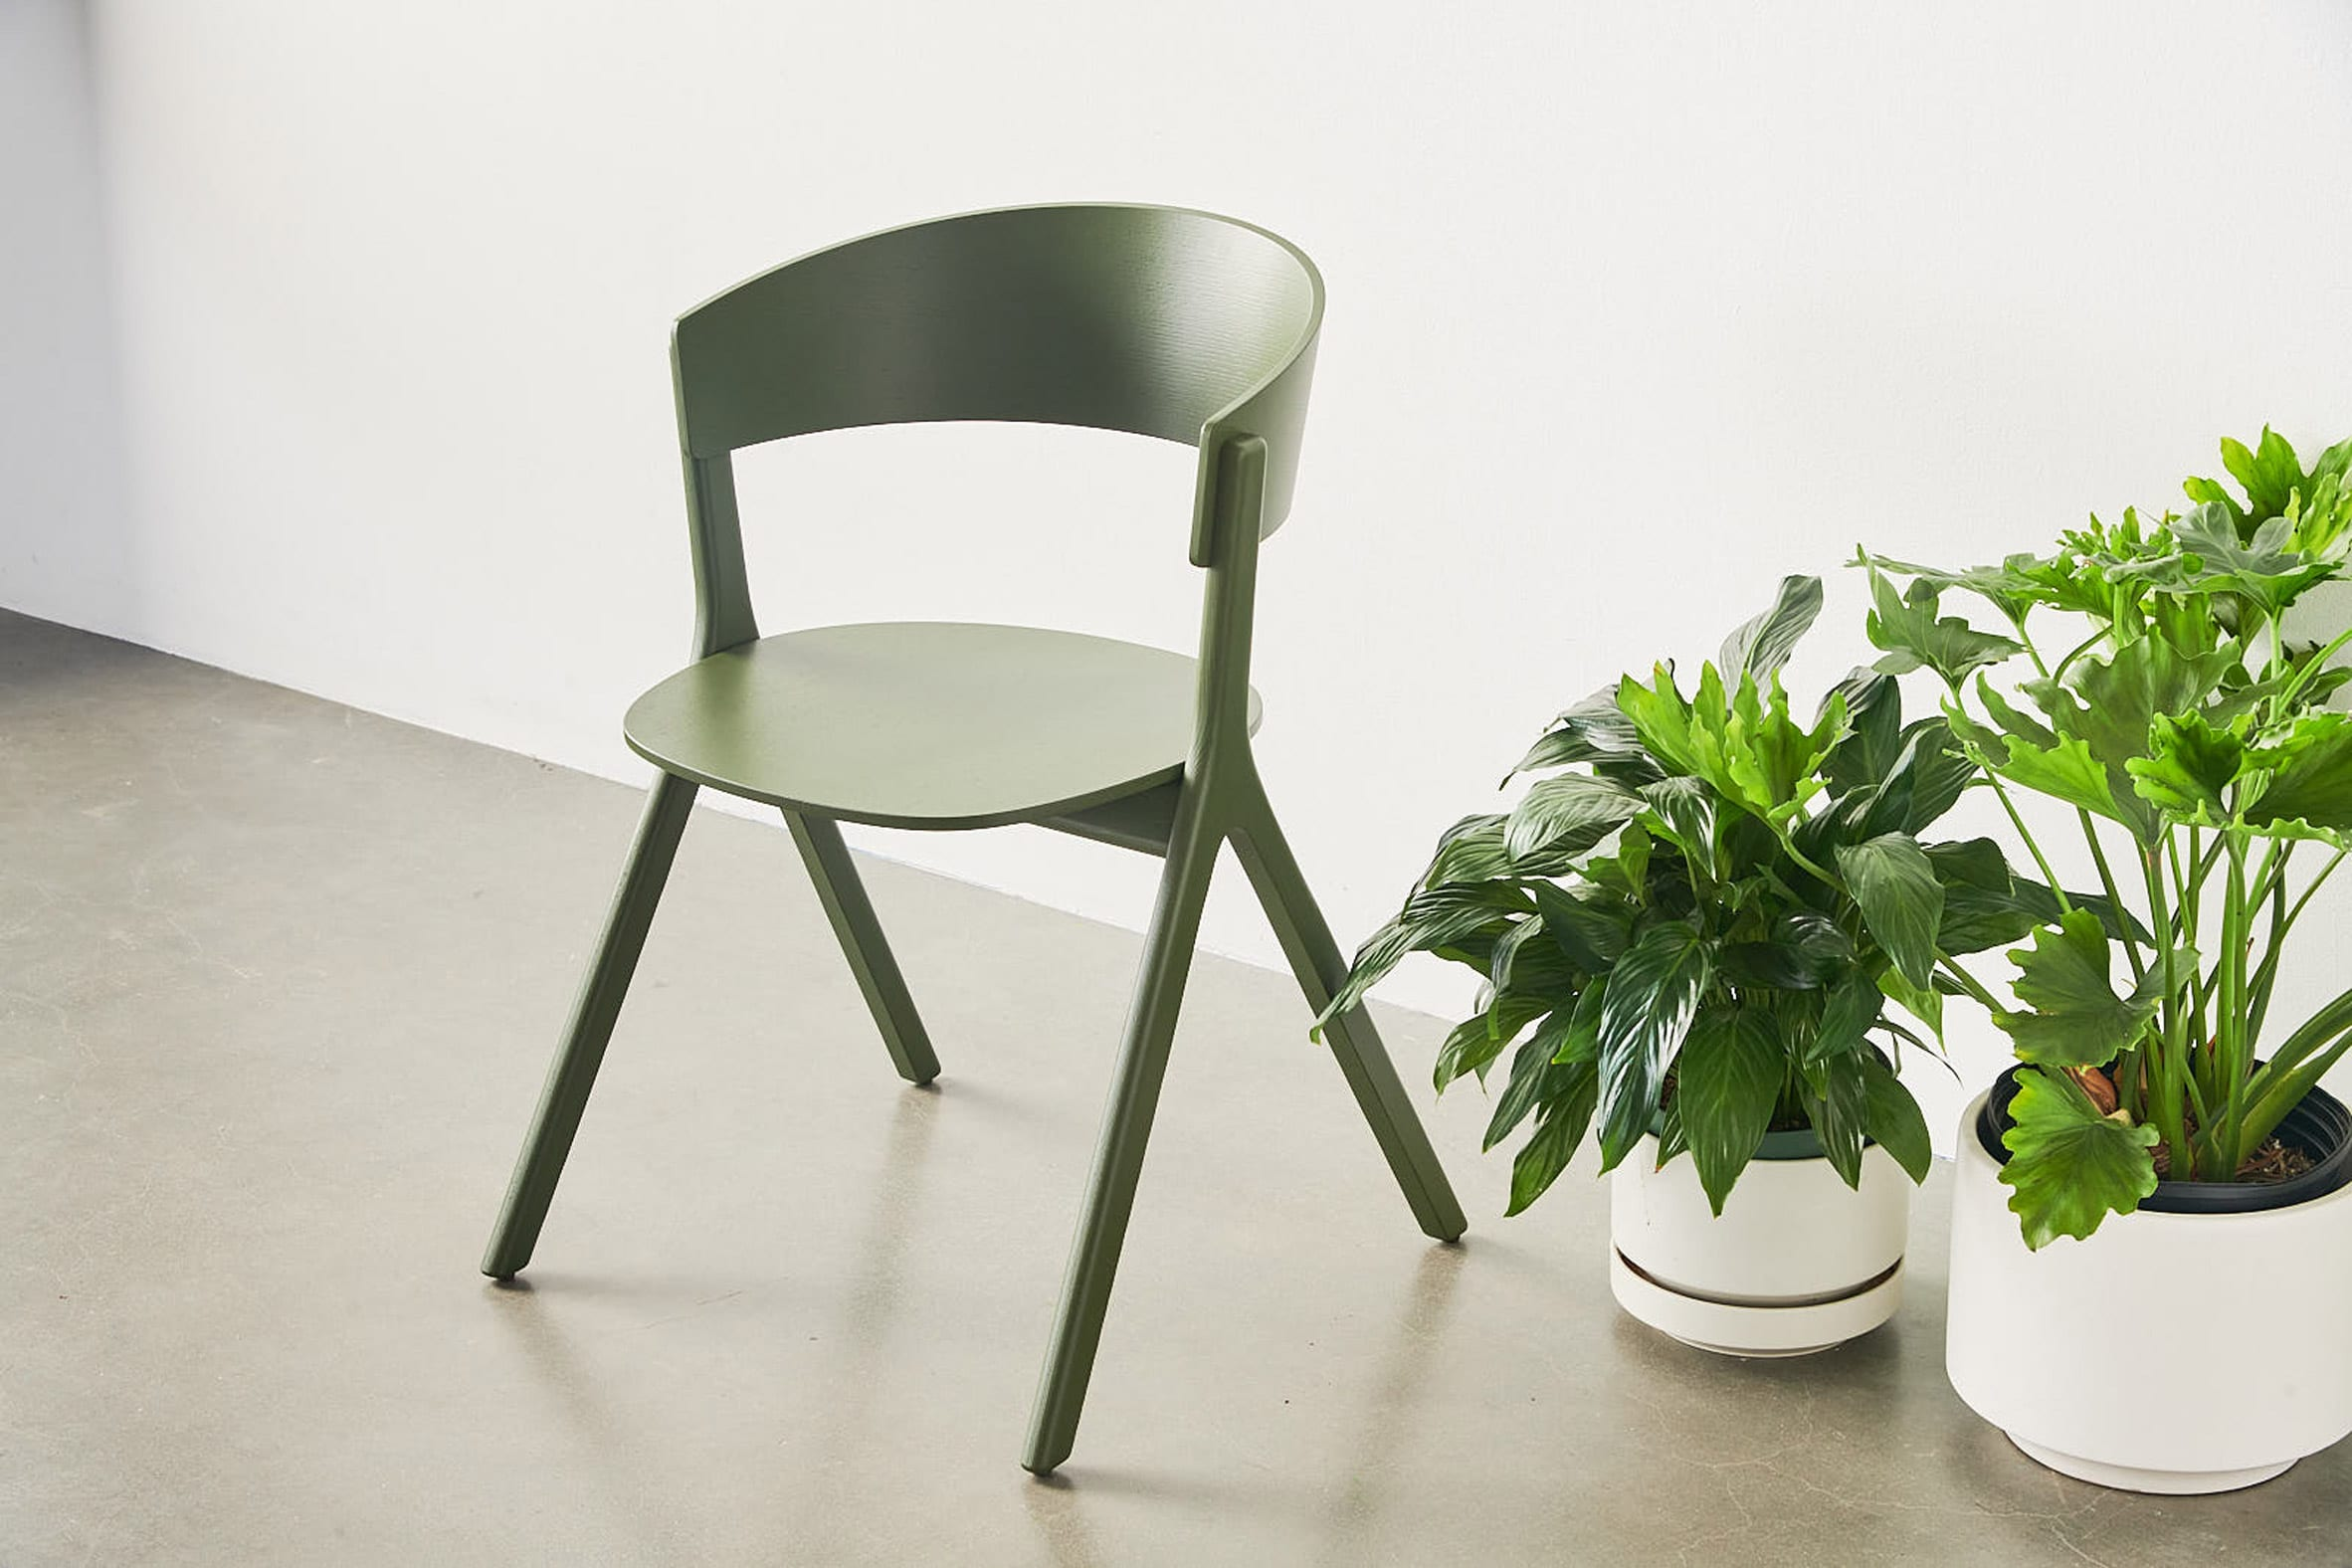 Green Circus Wood chair next to plants